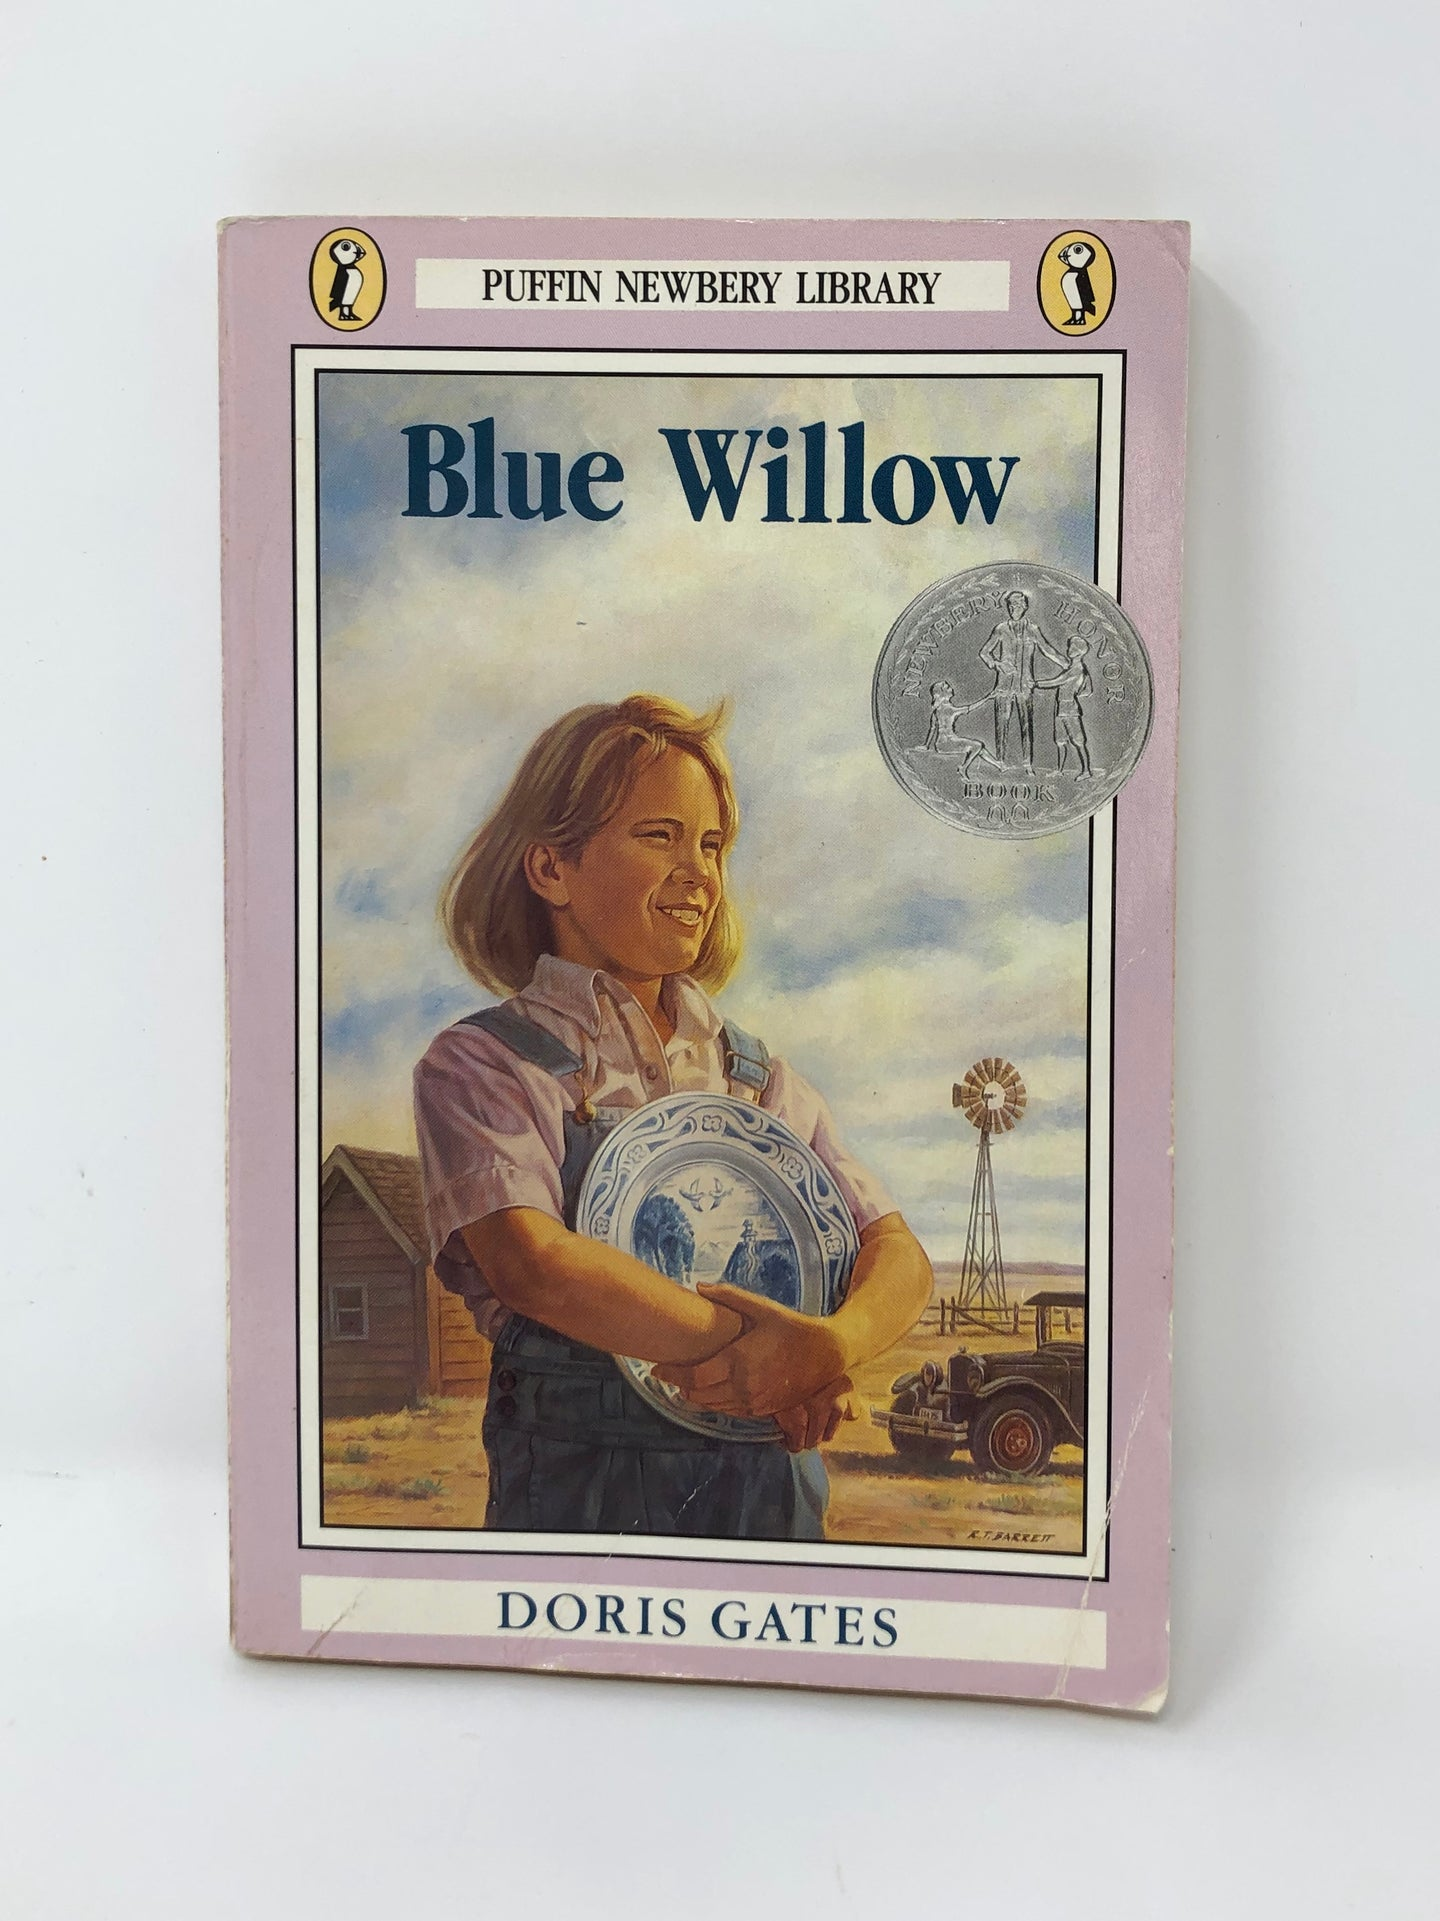 Blue Willow-Doris Gates (Used-Good) - Little Green Schoolhouse Books